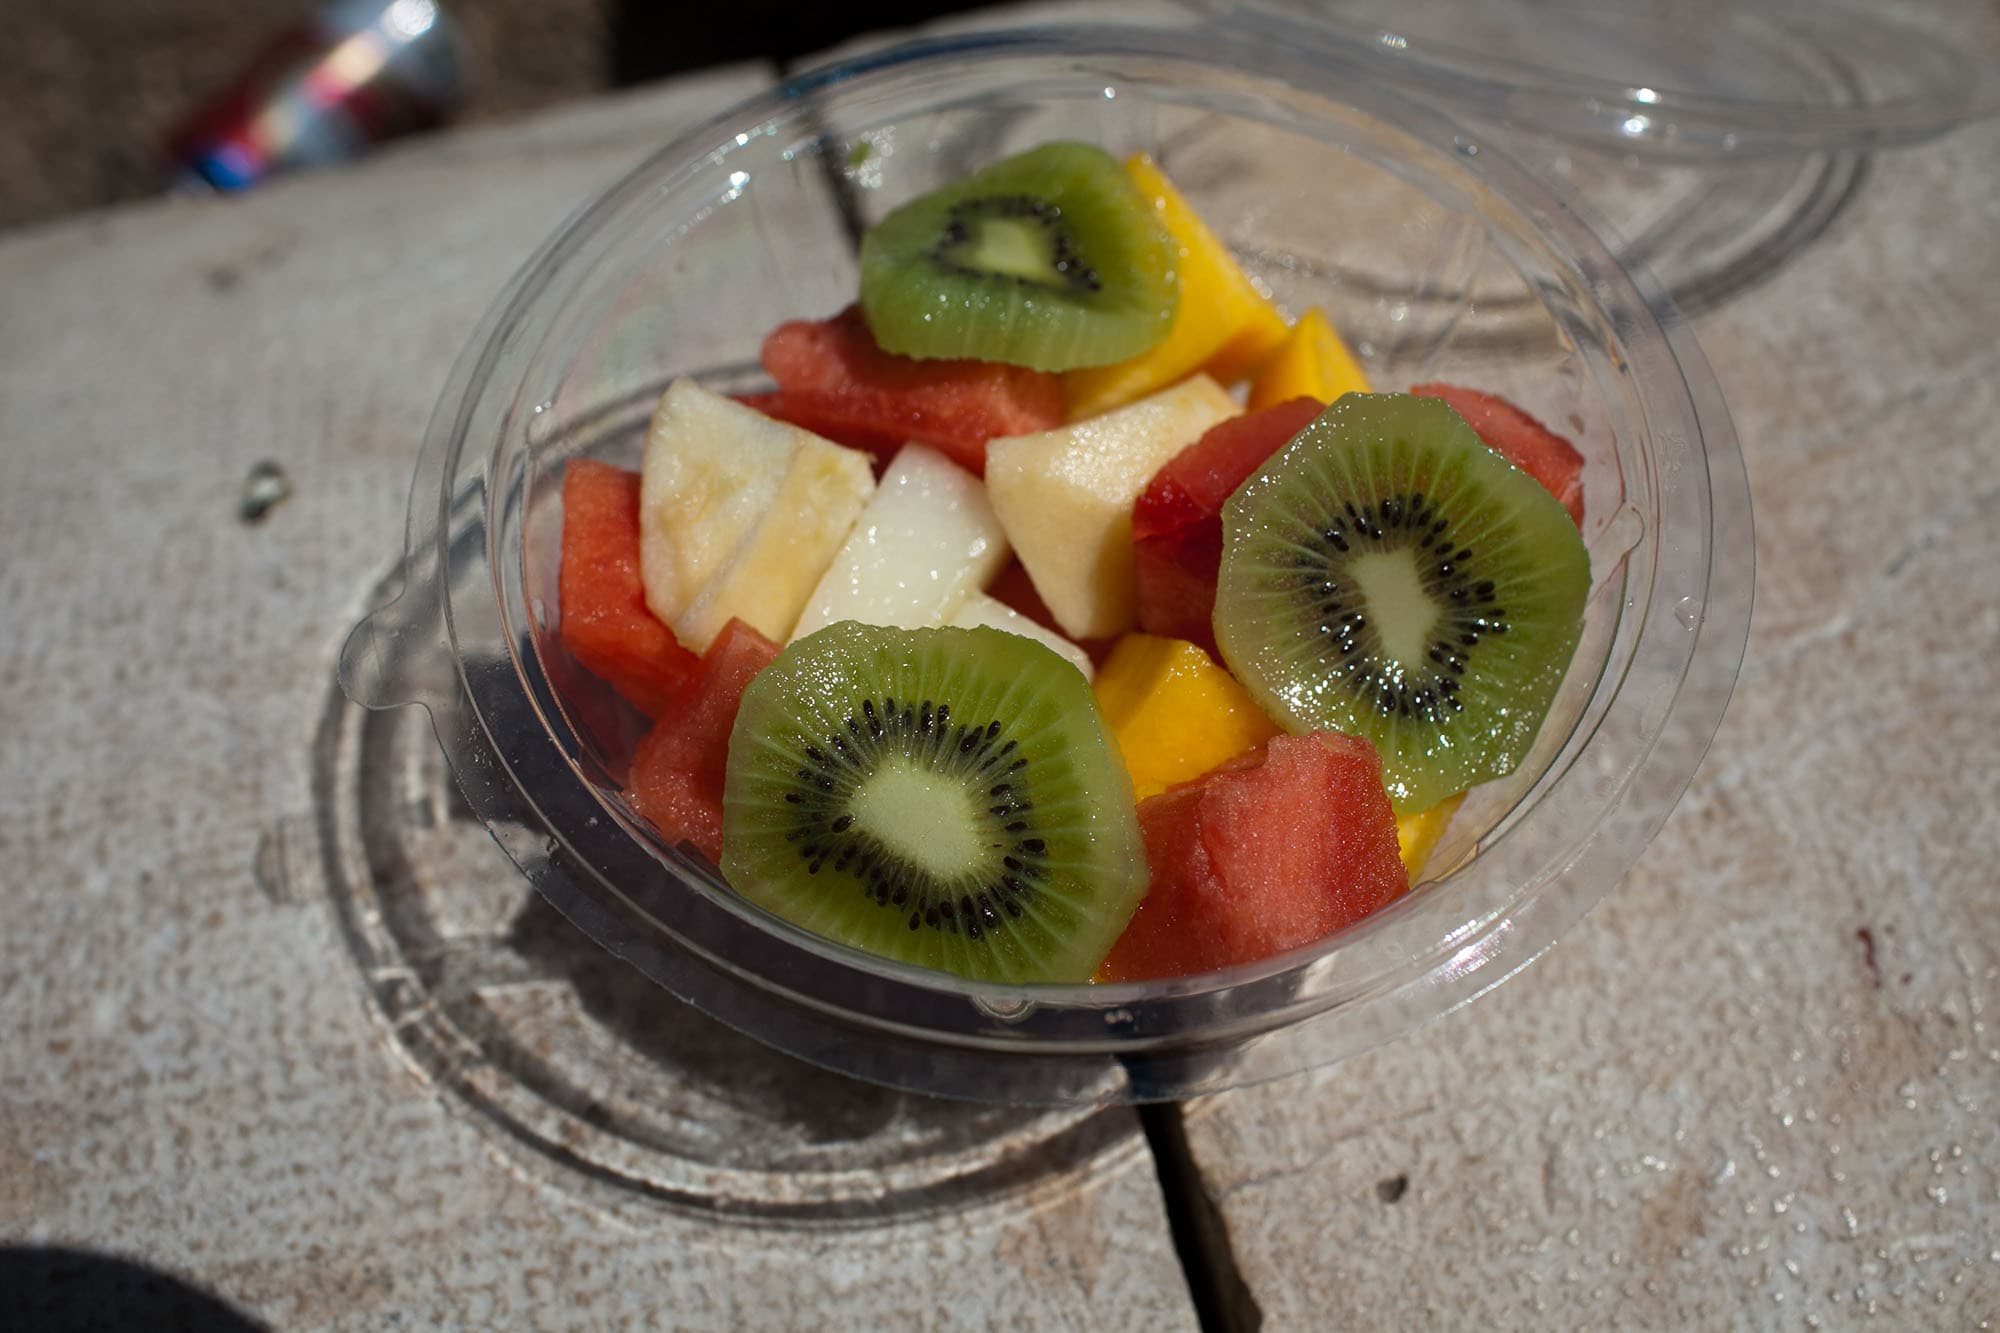 Fruit salad in Valencia, Spain.